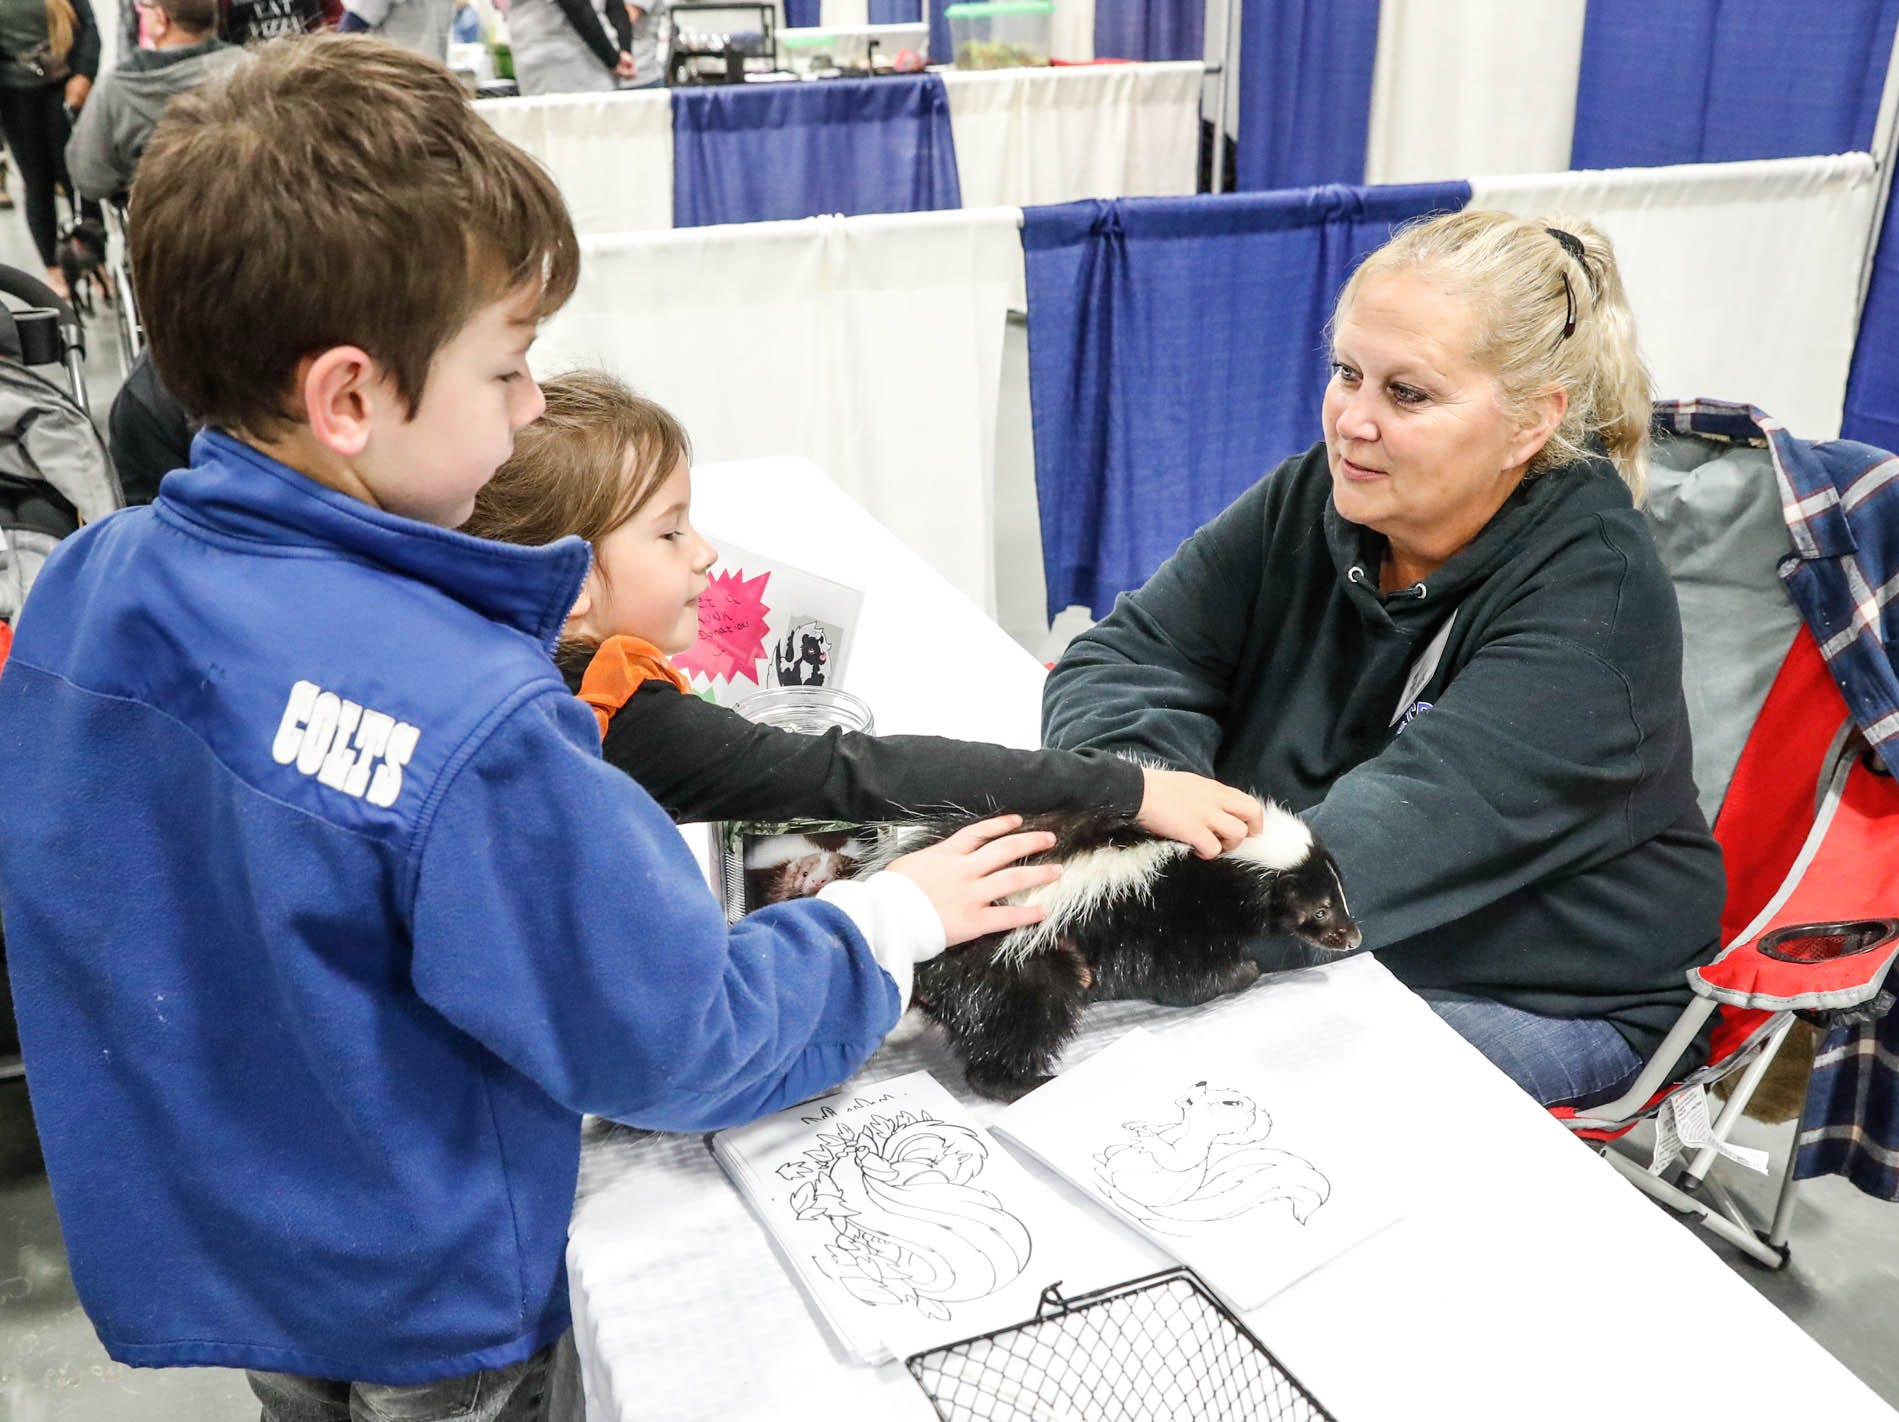 Drake and Charlotte Lewis get a chance to pet Diana, a young skunk belonging to Julie McLaughlin, right, from the Indiana Skunk Rescue at the Great Indy Pet Expo, held at the Indiana State Fairgrounds on Sat. Nov. 10, 2018.